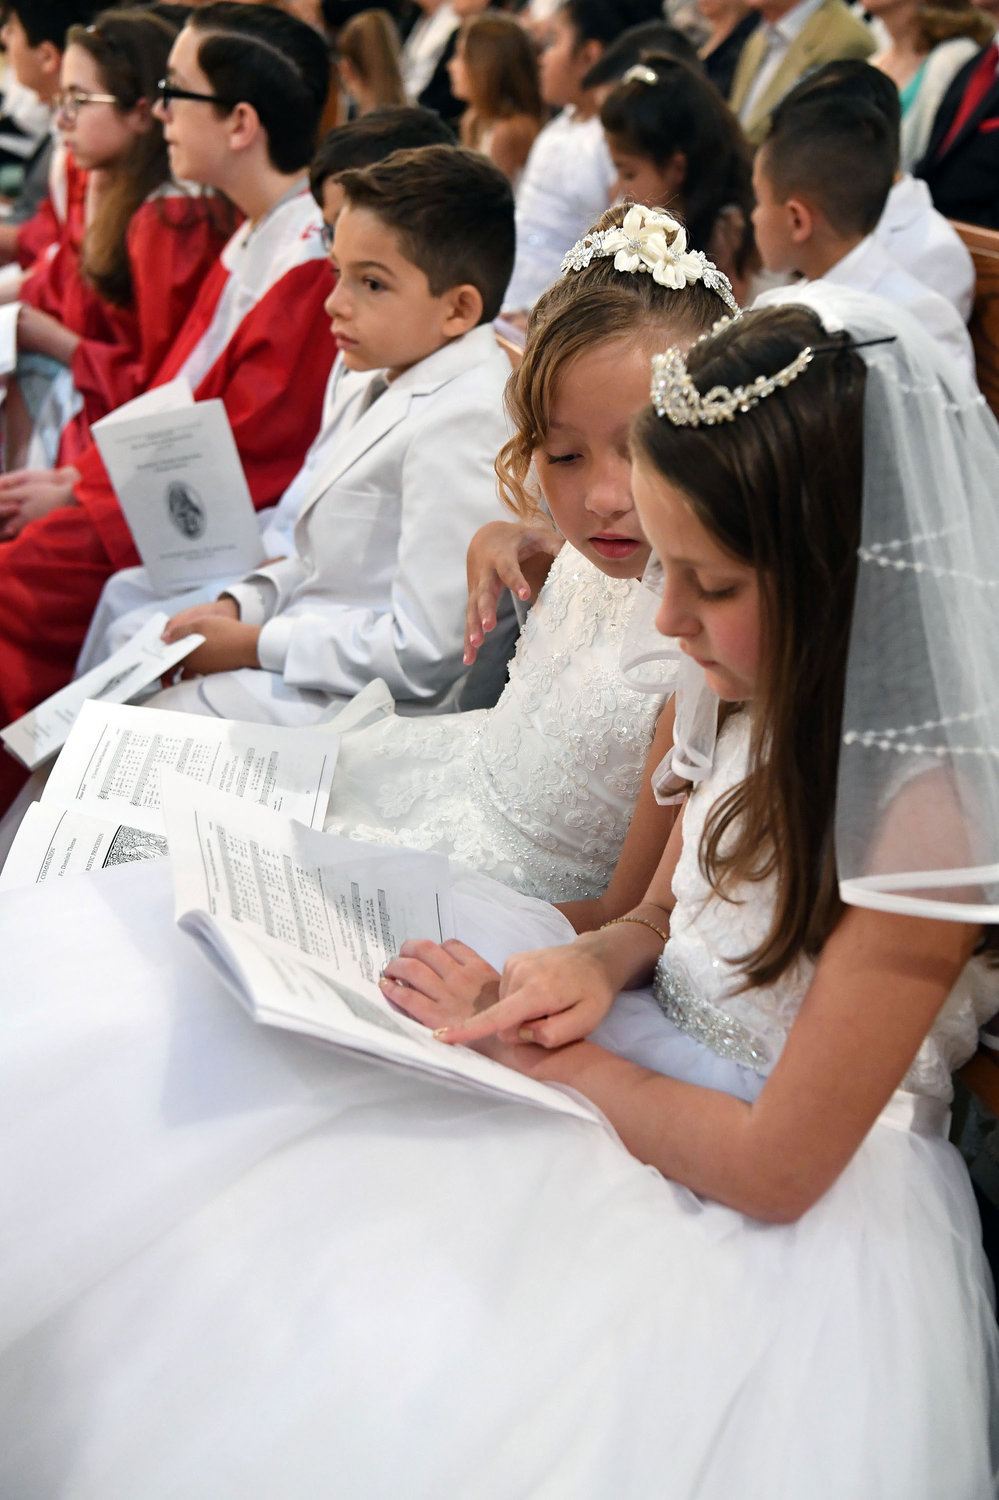 Sophia Marin and Quinn Tycenski are among the first Holy Communicants attending the Mass.